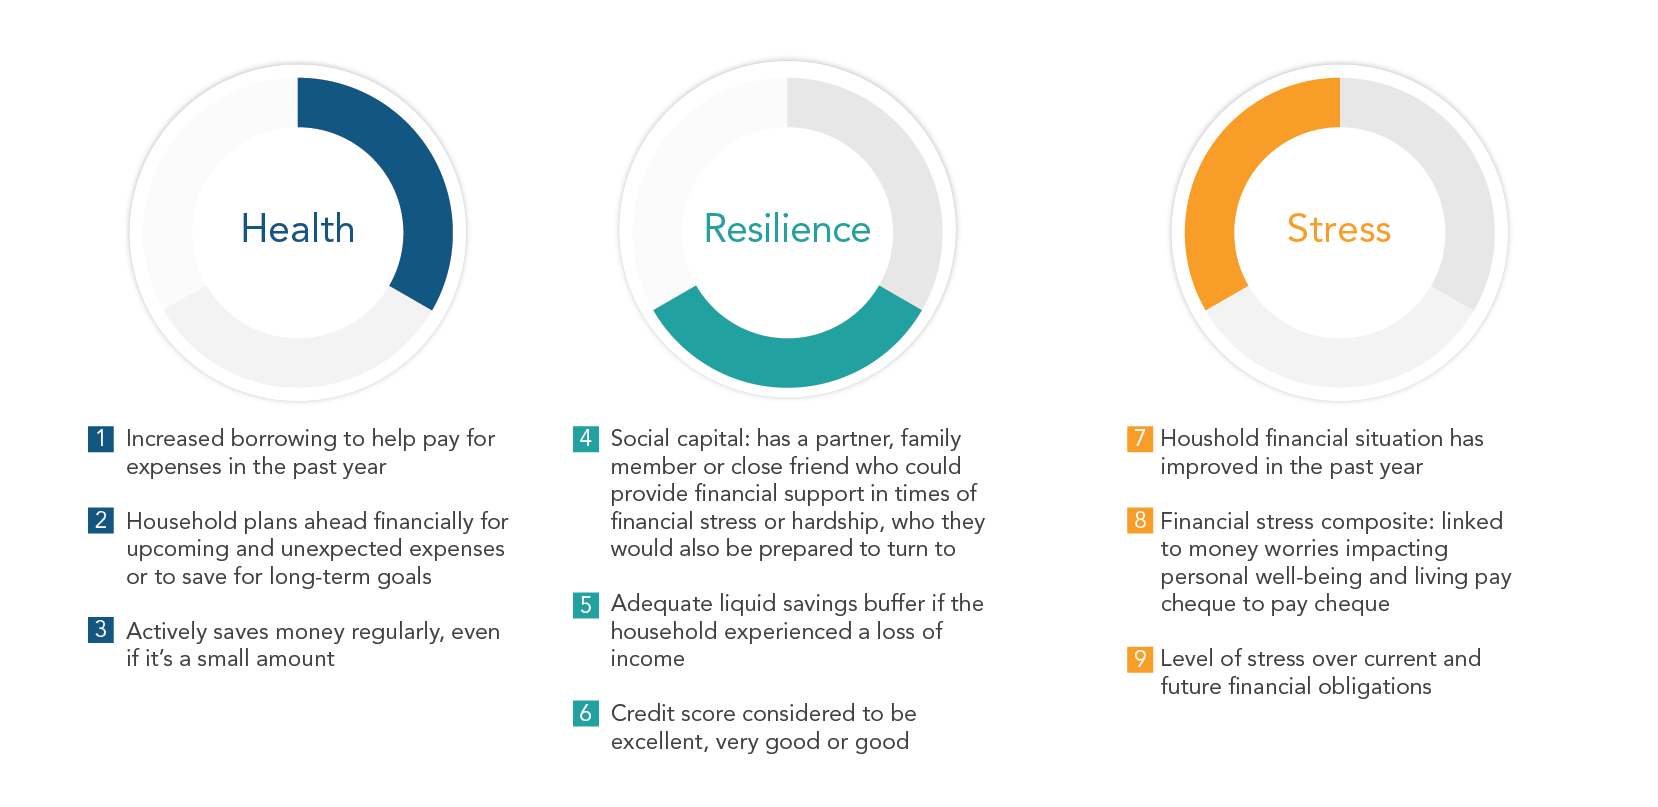 Financial Resilience Stress